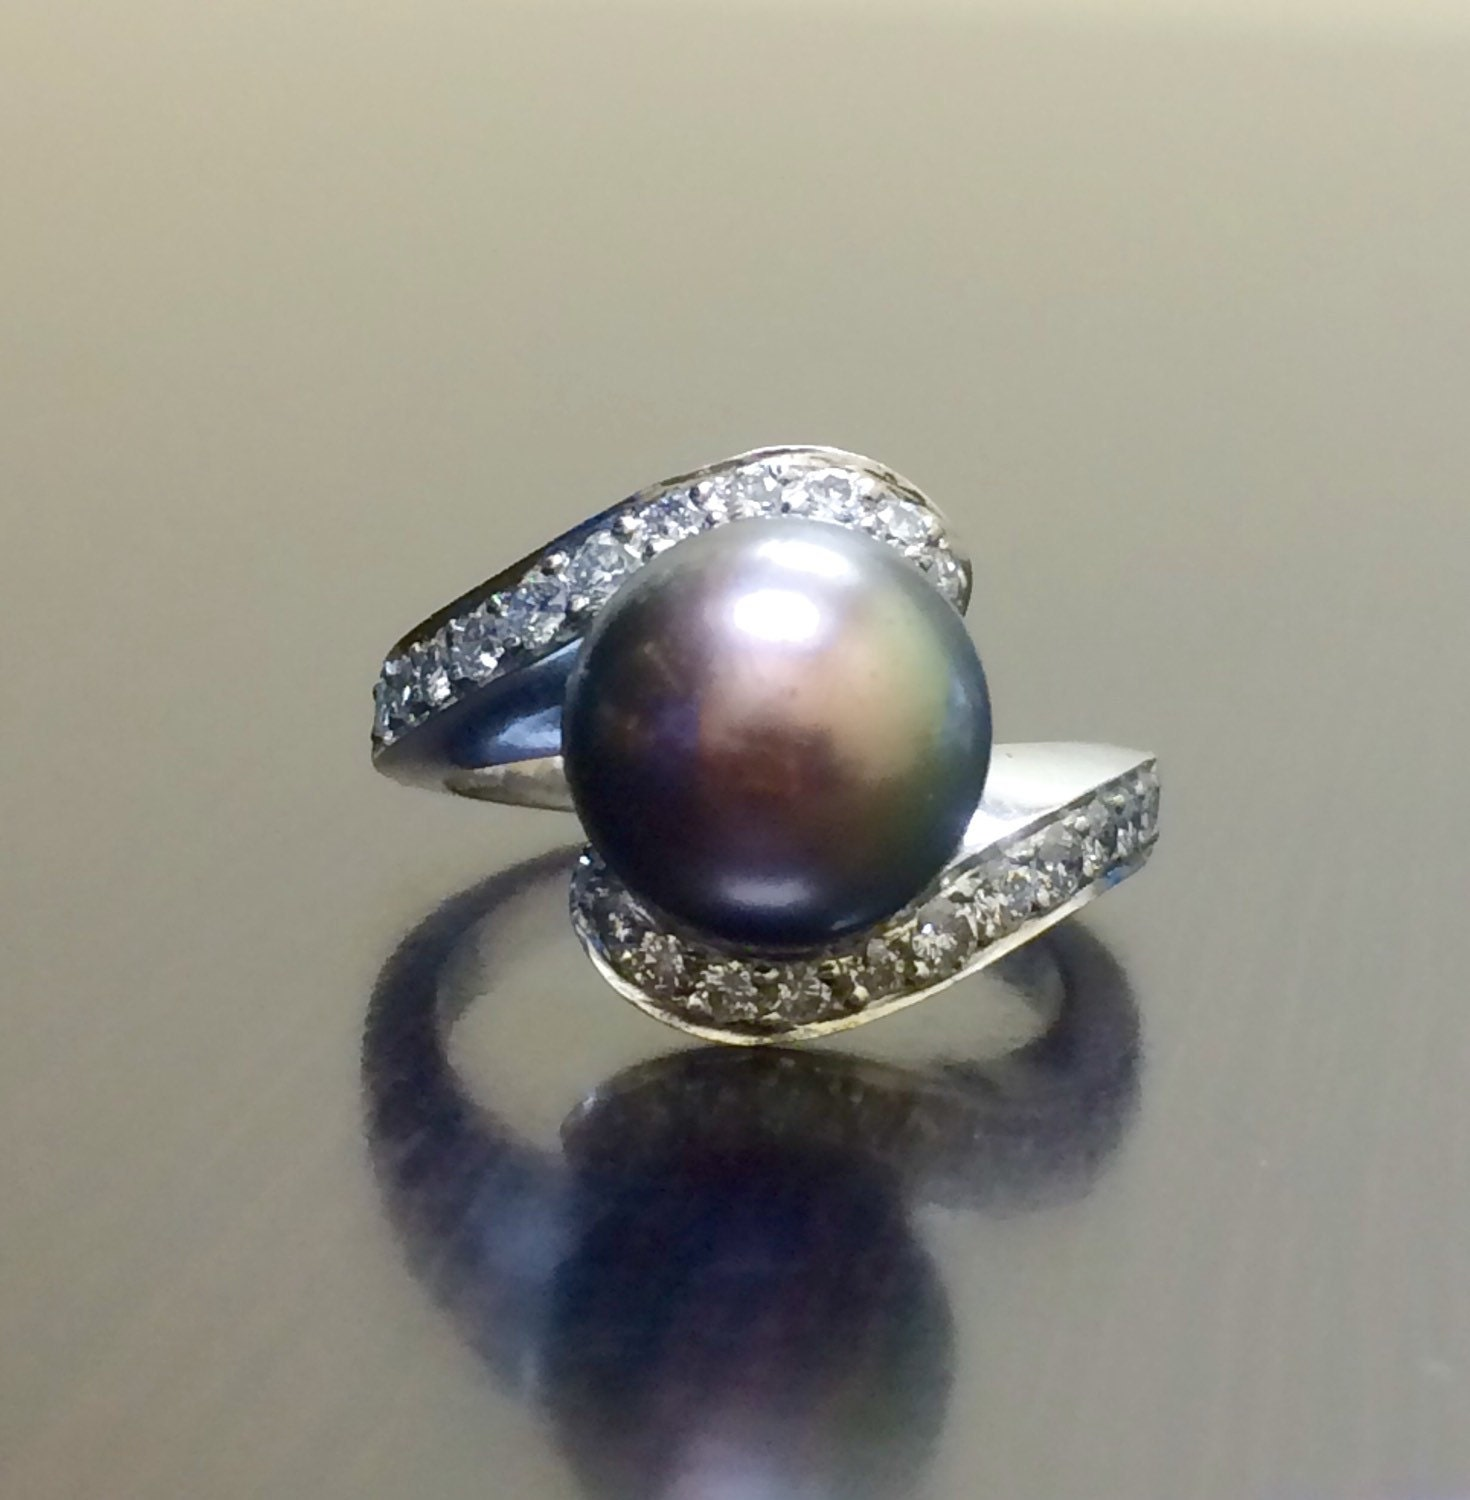 Pearl Wedding Ring: 18K White Gold Art Deco Black Pearl Diamond Engagement Ring